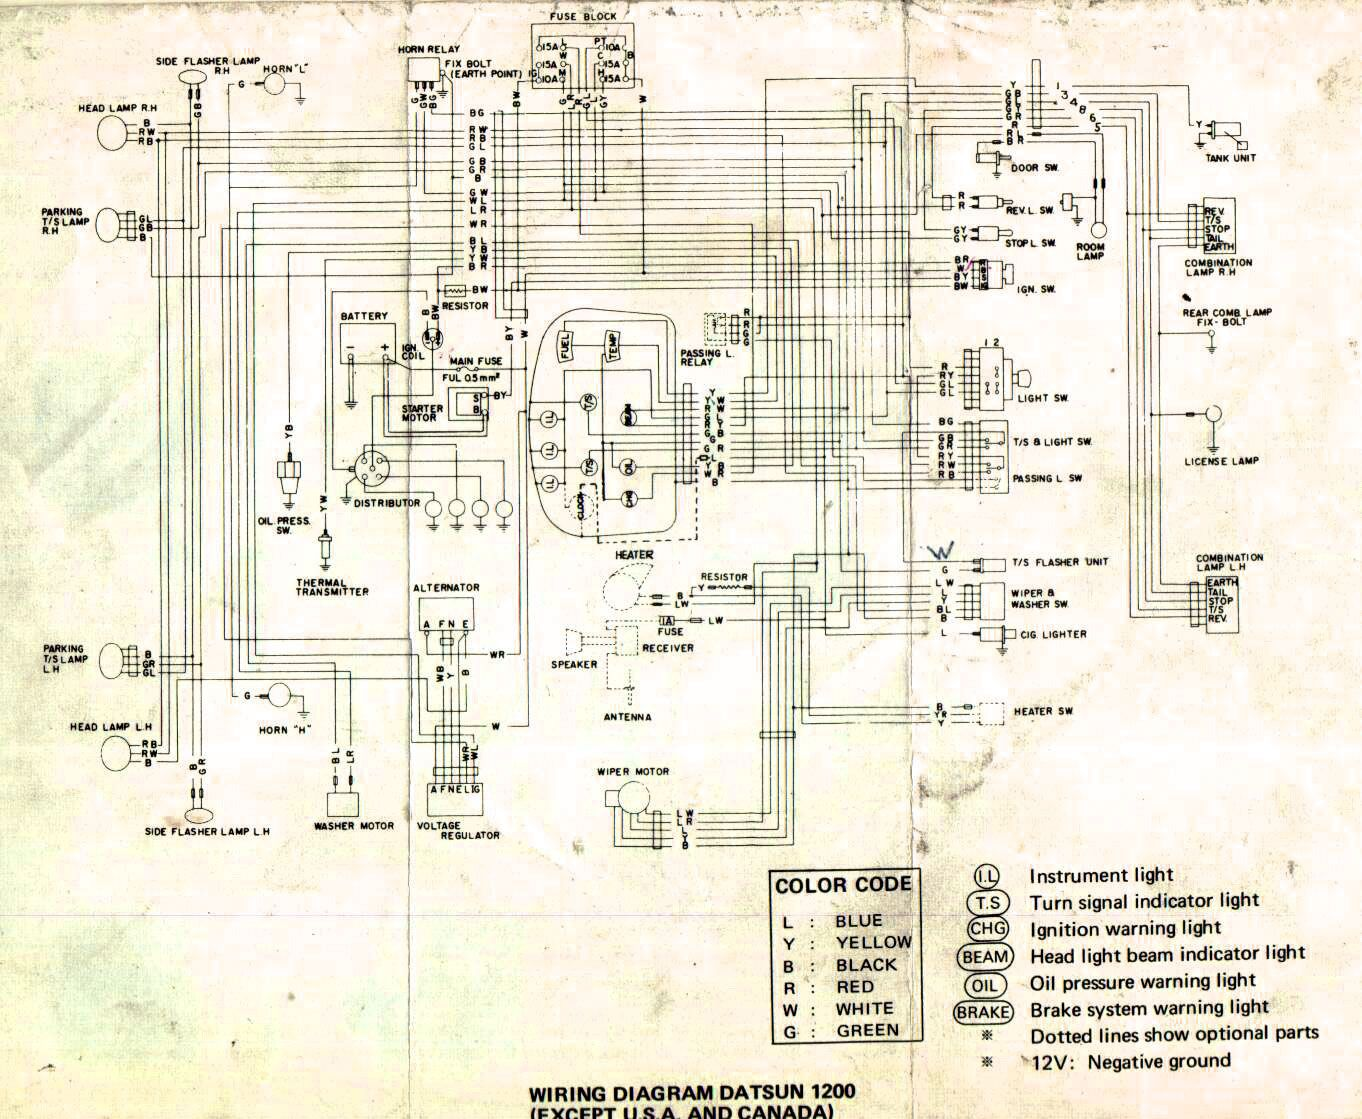 Wiring Diagram For Nissan 1400 Champ : Wiring diagram for nissan bakkie